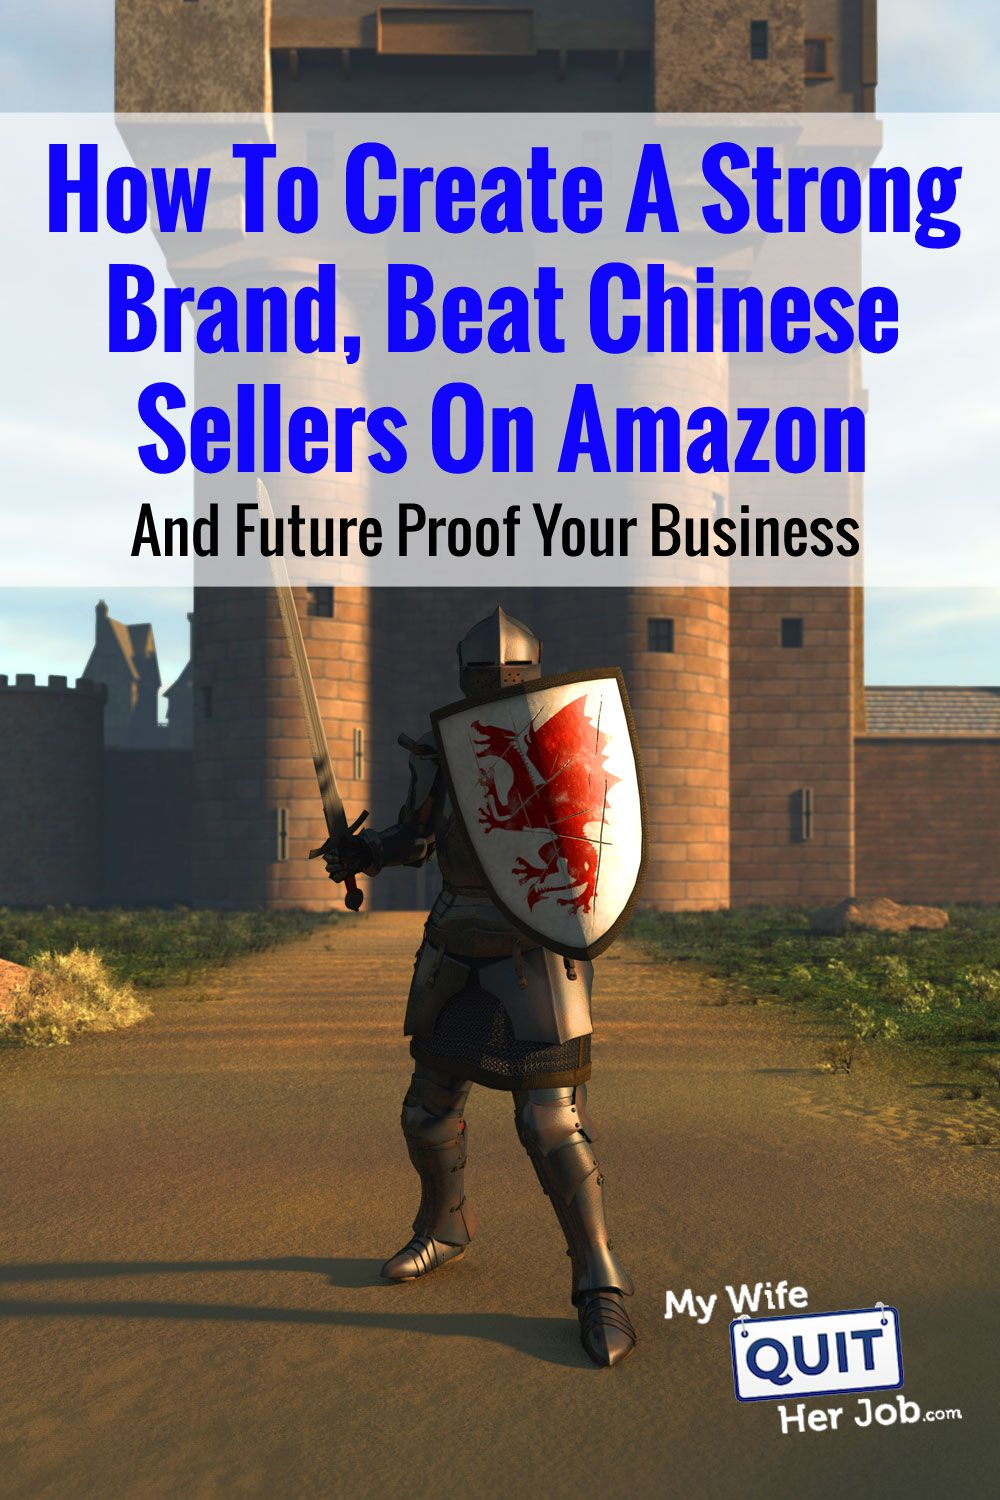 Brand Positioning And The Best Way To Beat Chinese Sellers On